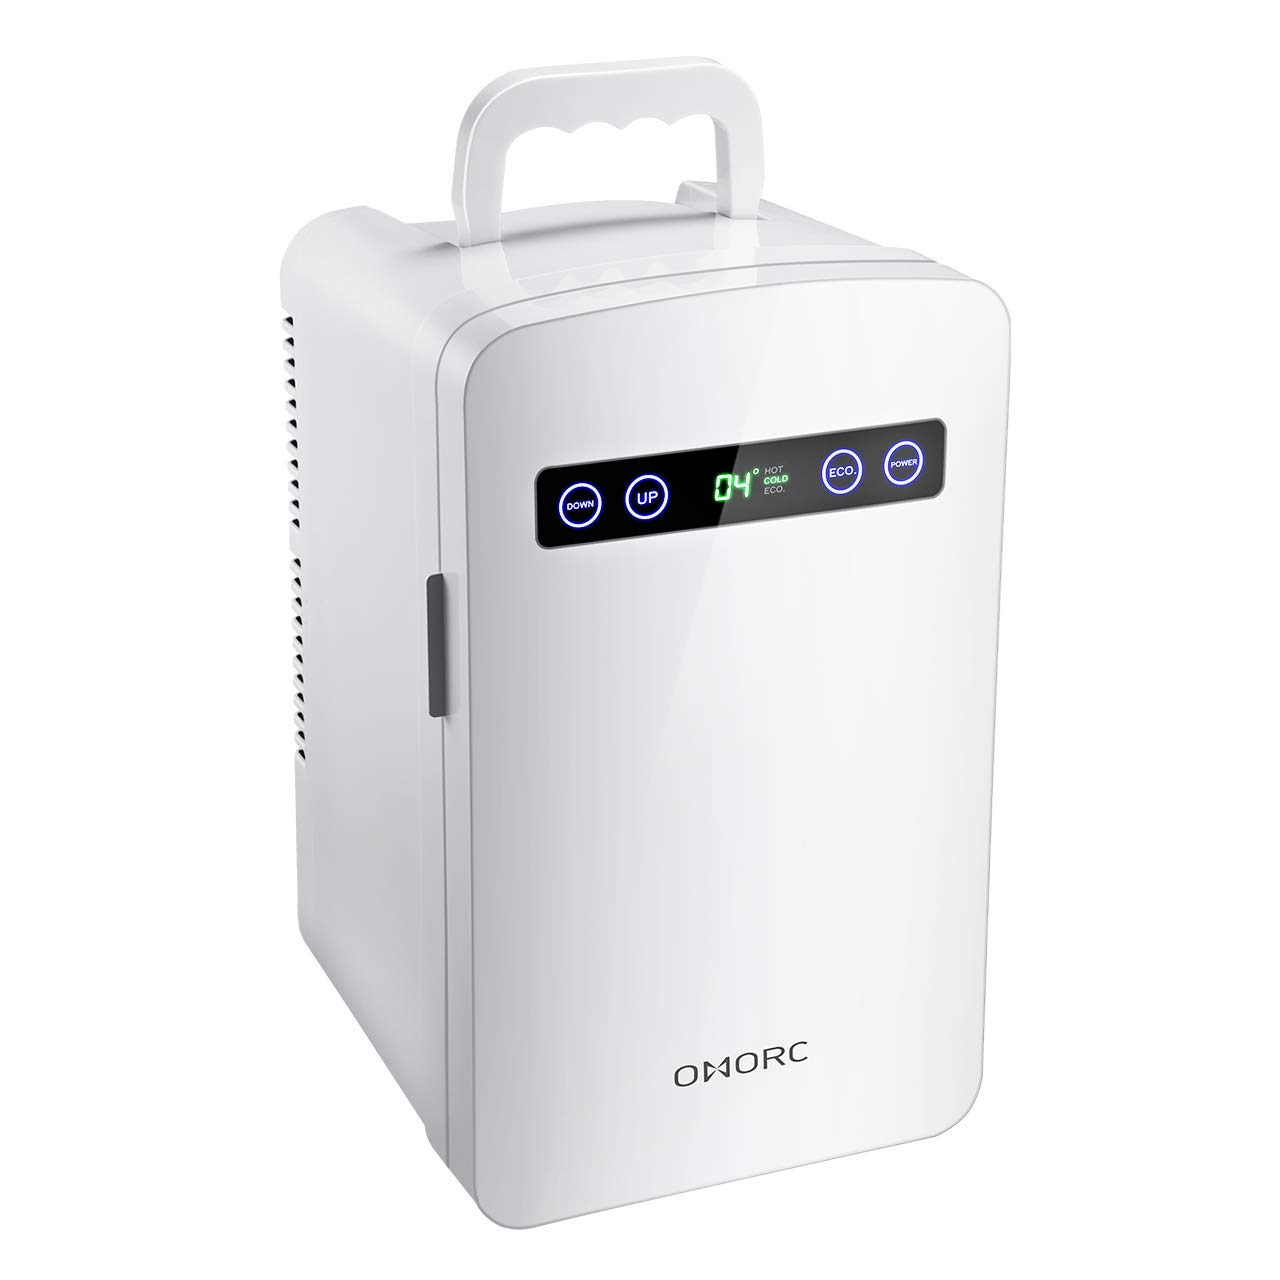 OMORC Tiny Fridge, 10L Mini Fridge Cooler Warmer 10L Car Refrigerator with LED Display Dual-Core System ECO for Saving Energy and Super Quiet, Personal Office Fridge- AC DC 1-White